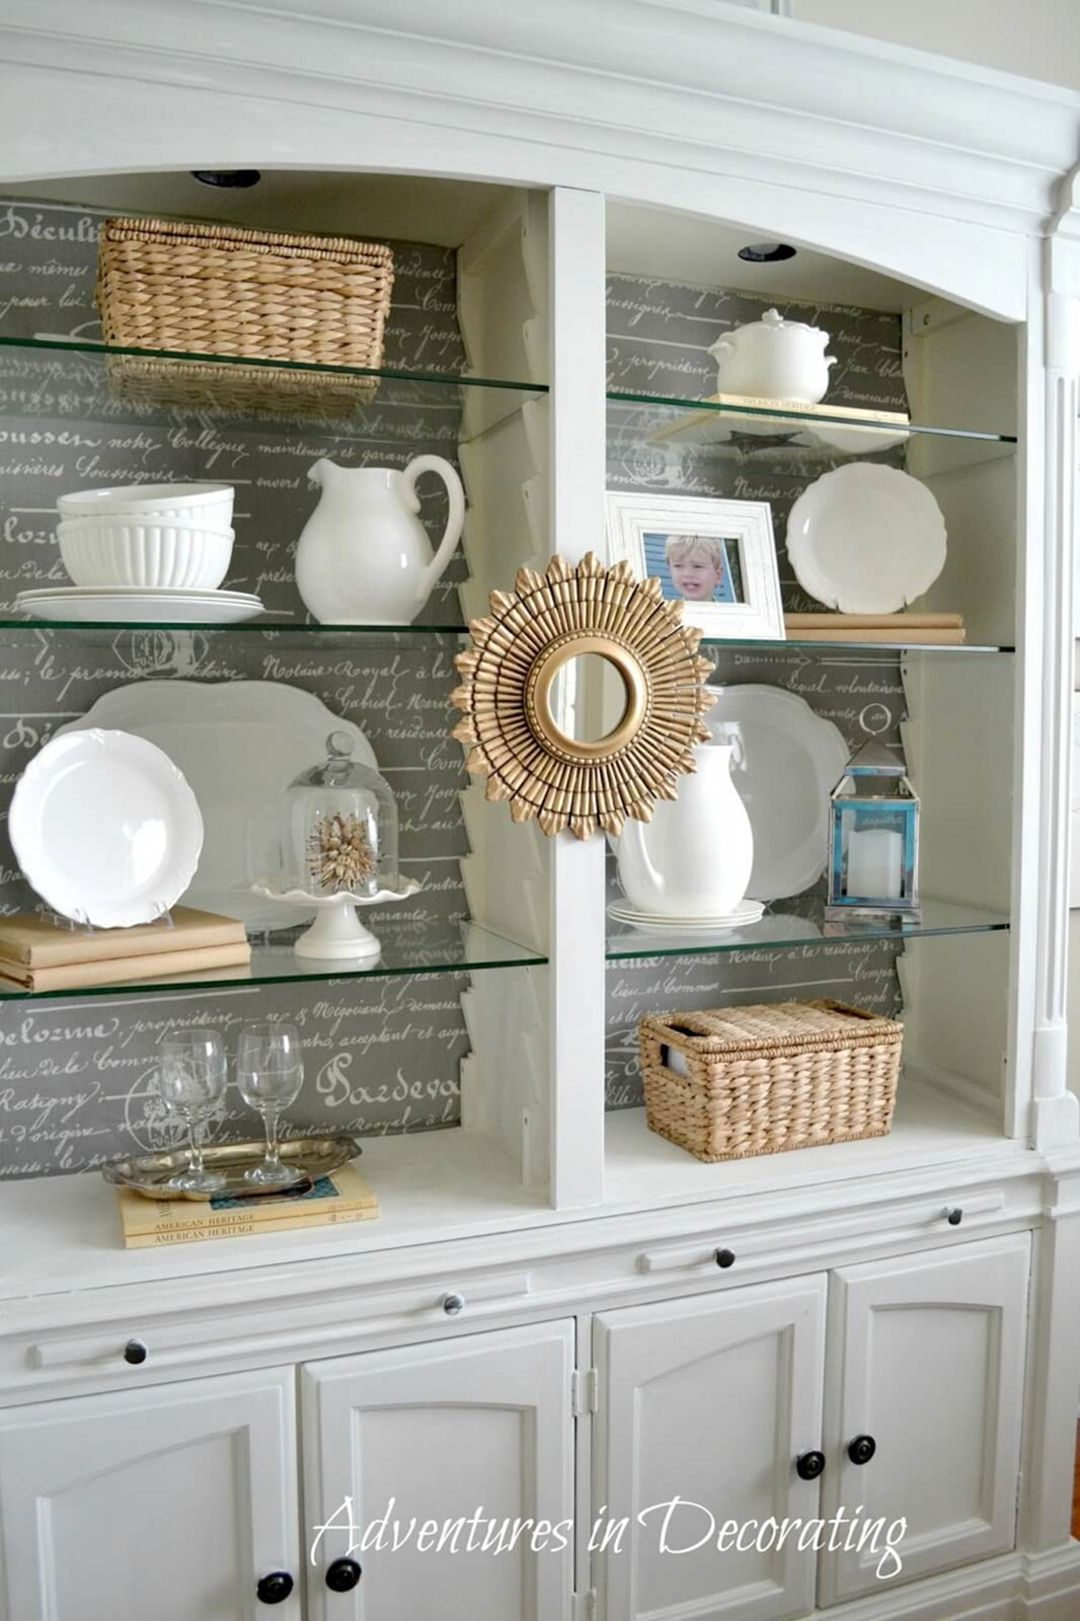 15 Awesome Dining Room Storage Ideas For A New Season In Your Home images